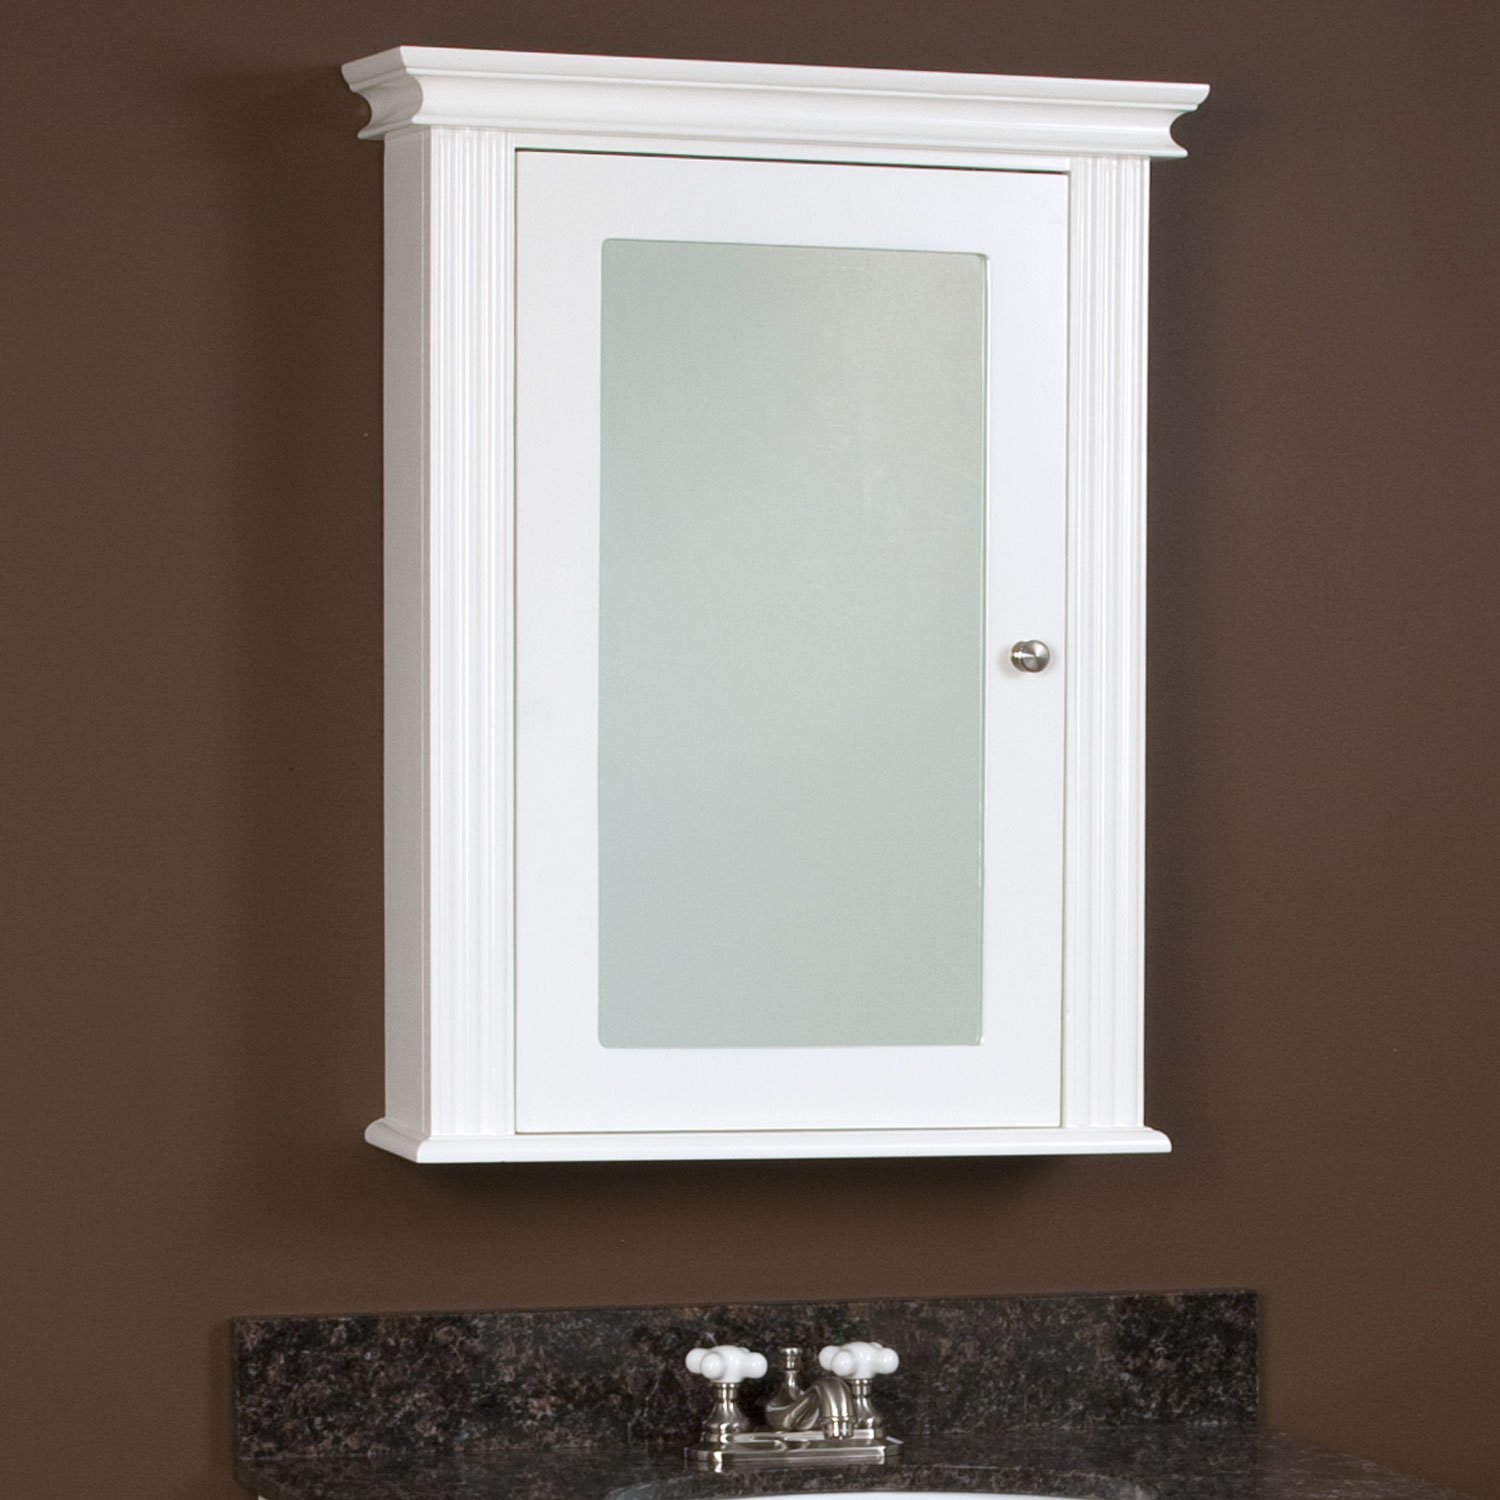 Awesome White Wooden Recessed Medicine Cabinet No Mirror On Brown Wall